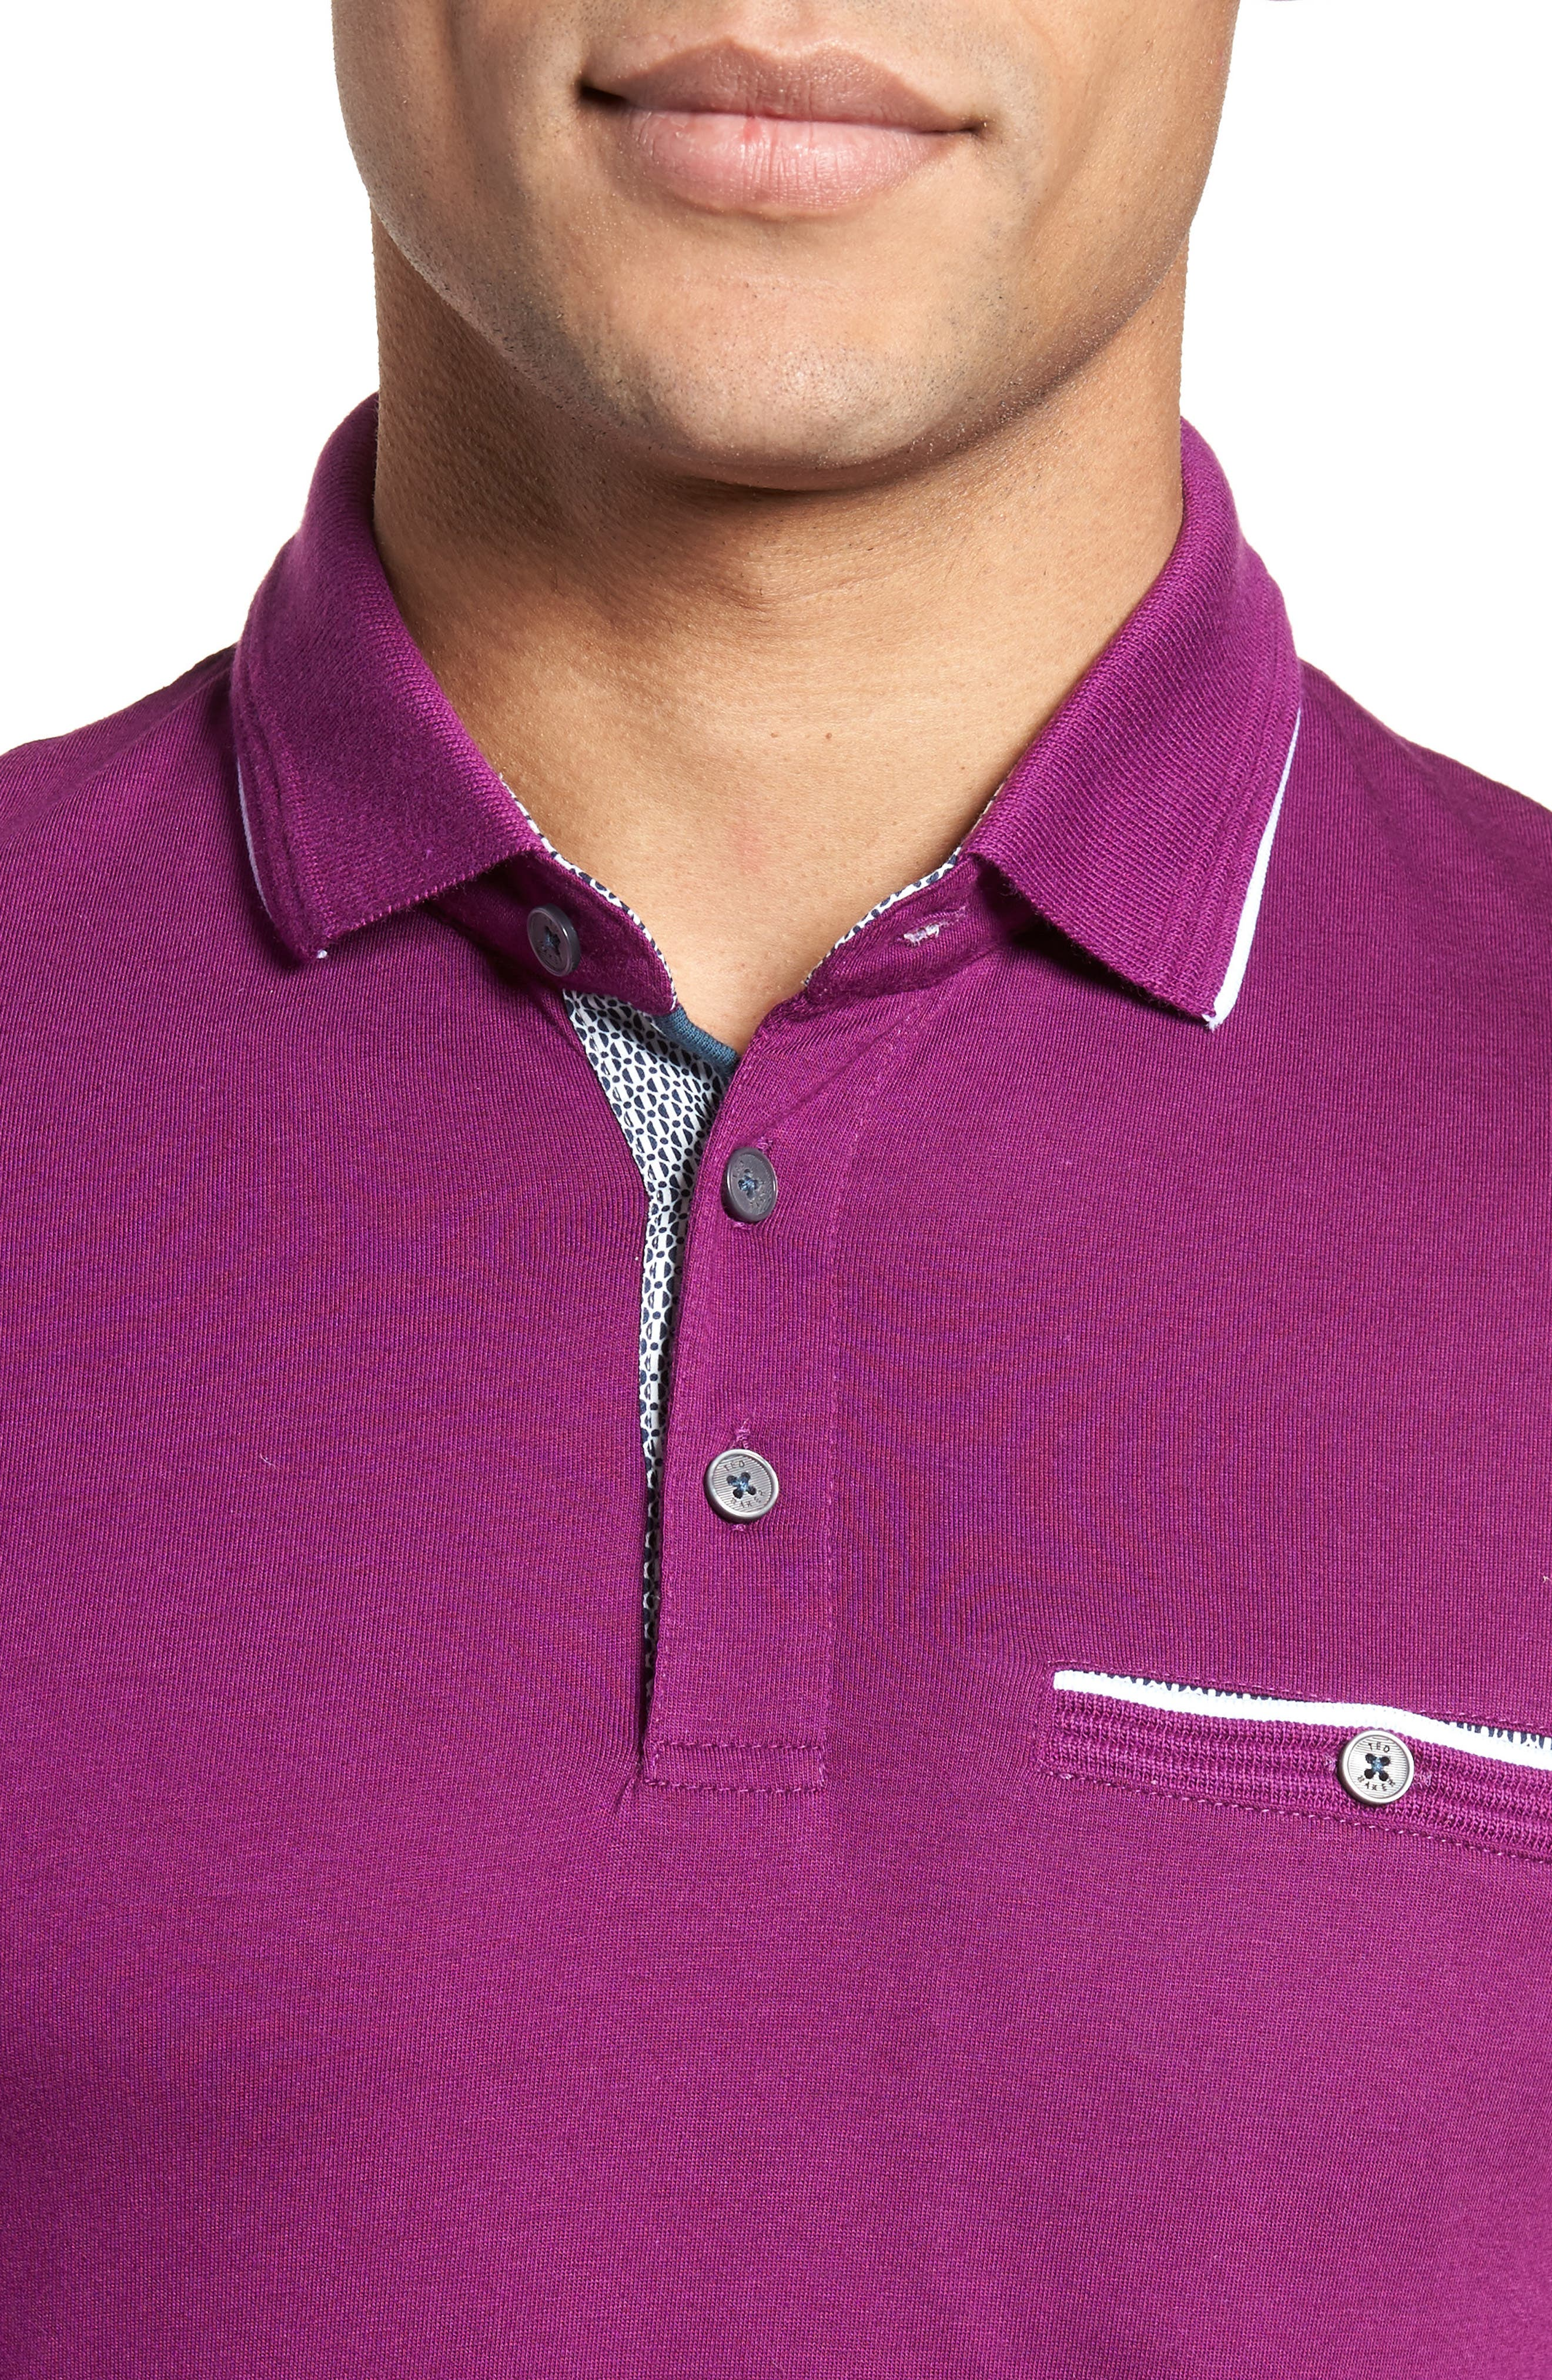 Derry Modern Slim Fit Polo,                             Alternate thumbnail 4, color,                             Deep Purple